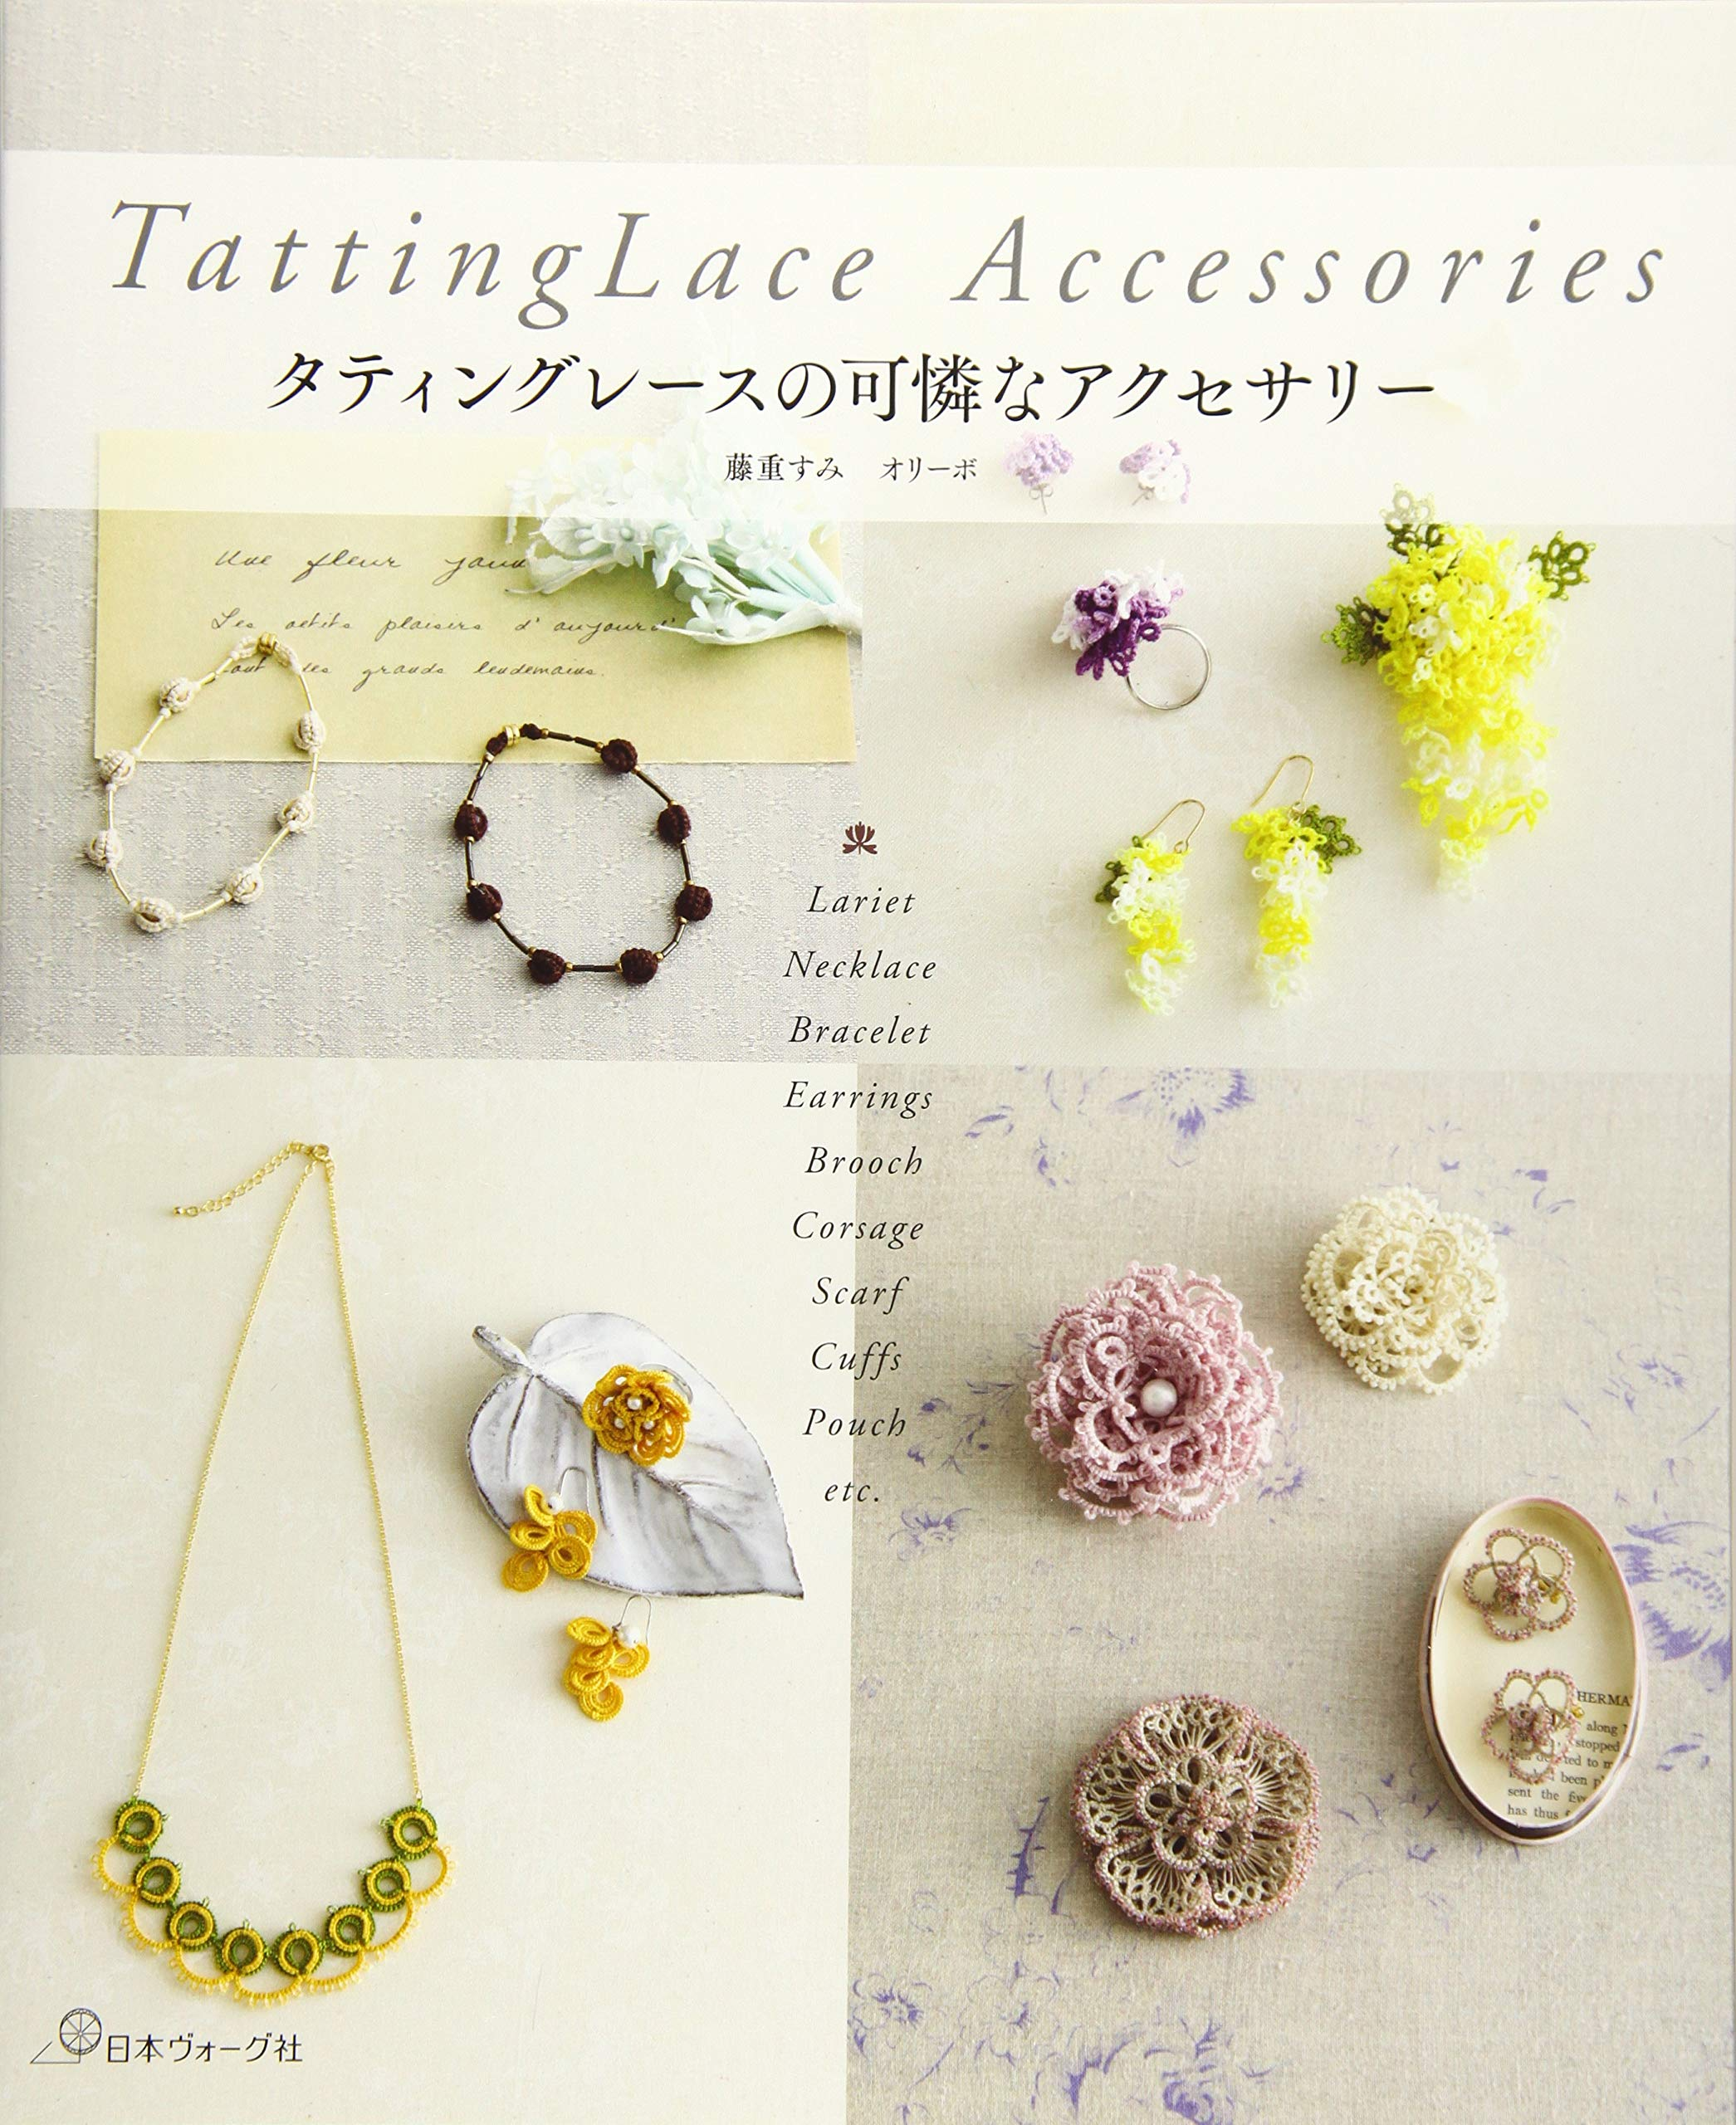 Tatting pretty accessories of the lace large book